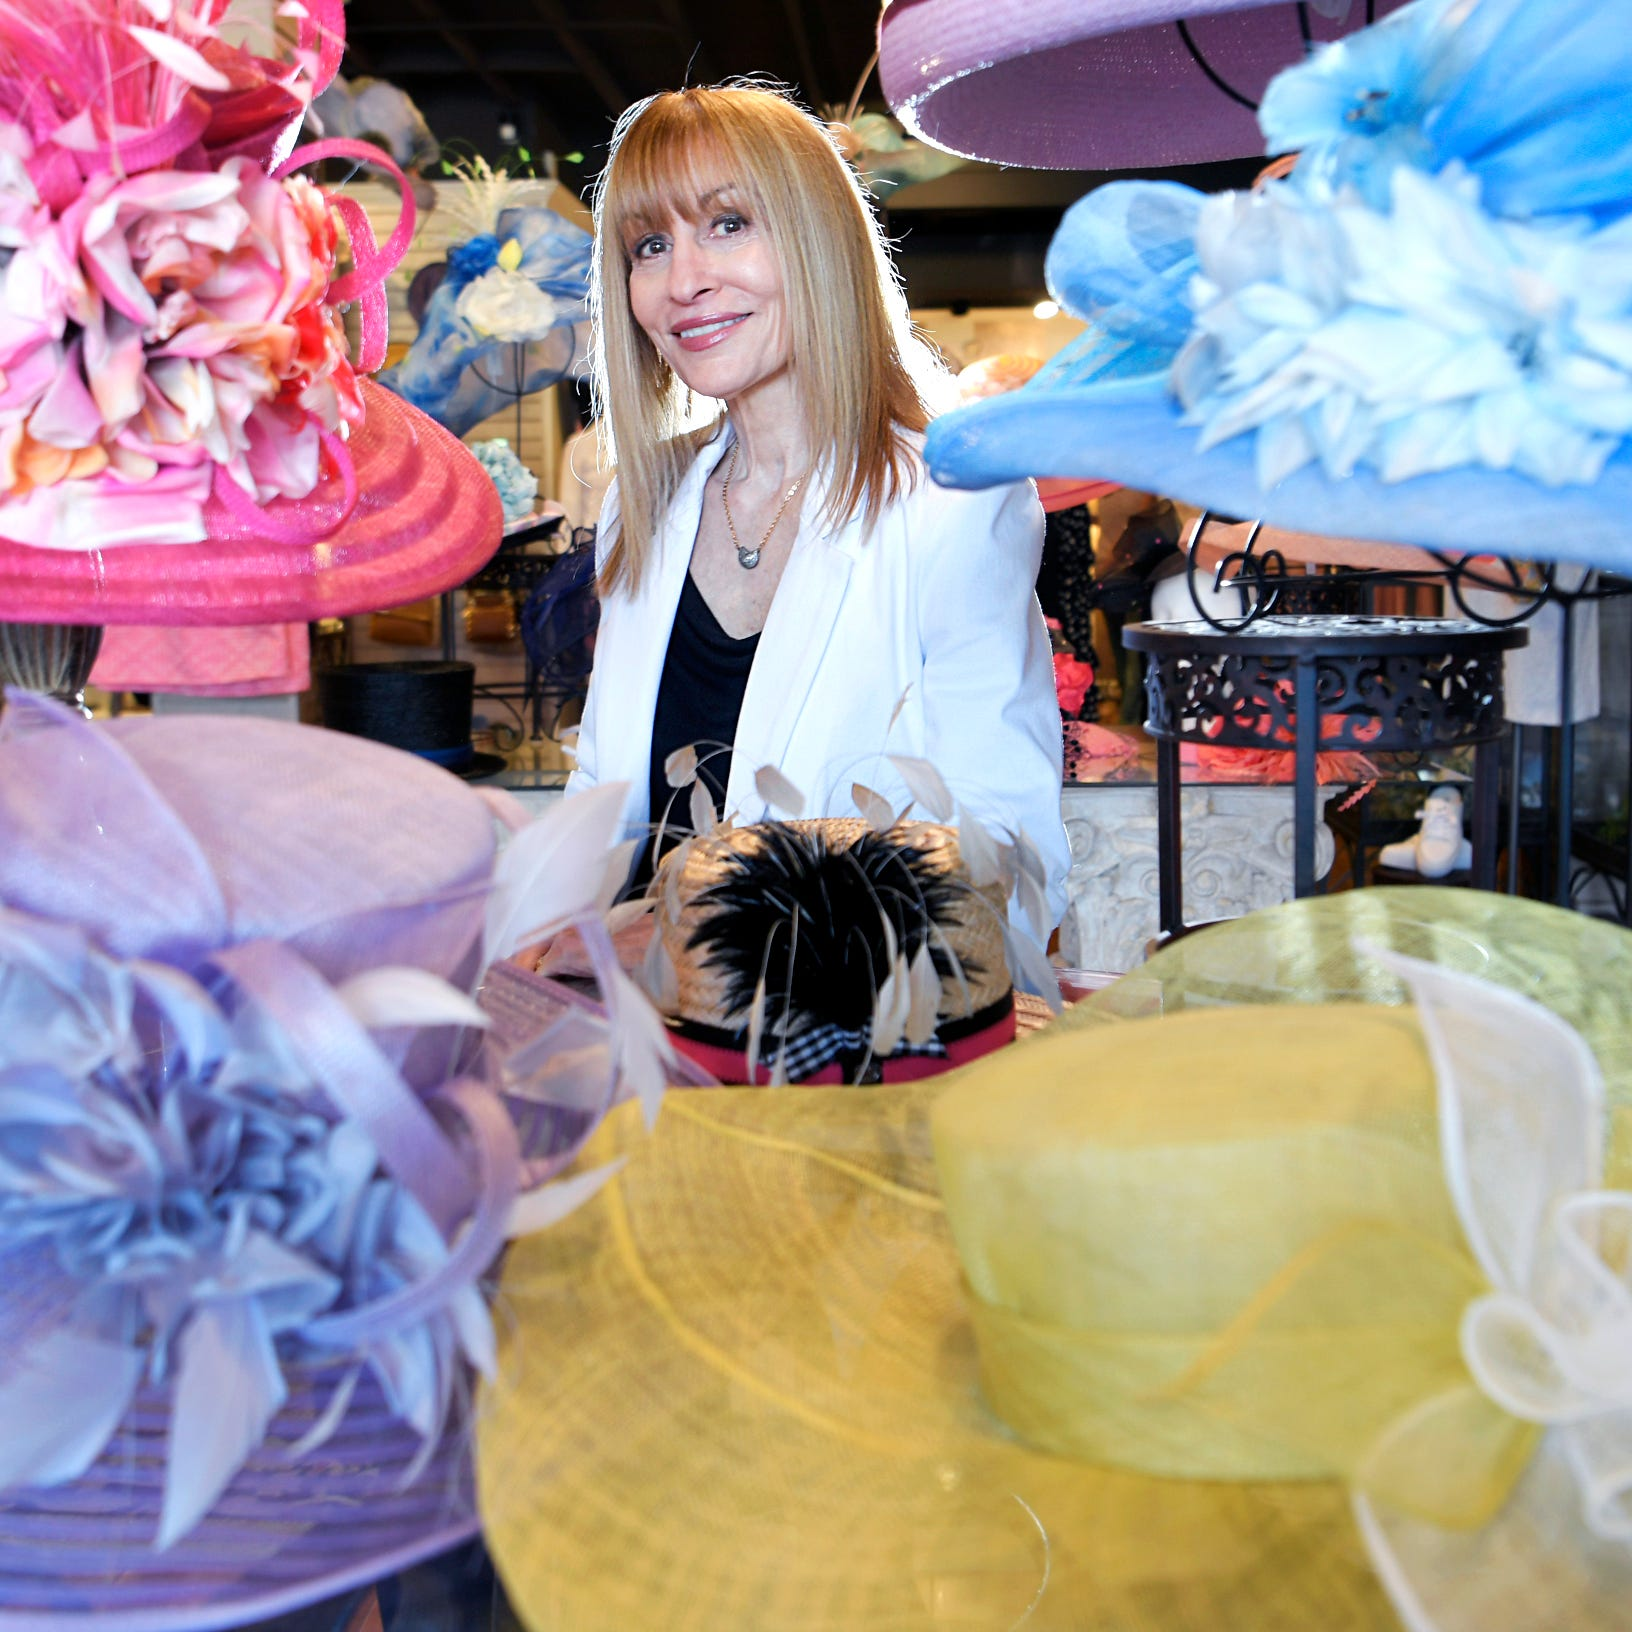 What does a $769 hat look like? Meet the boutique owner behind Steeplechase's most exotic hats